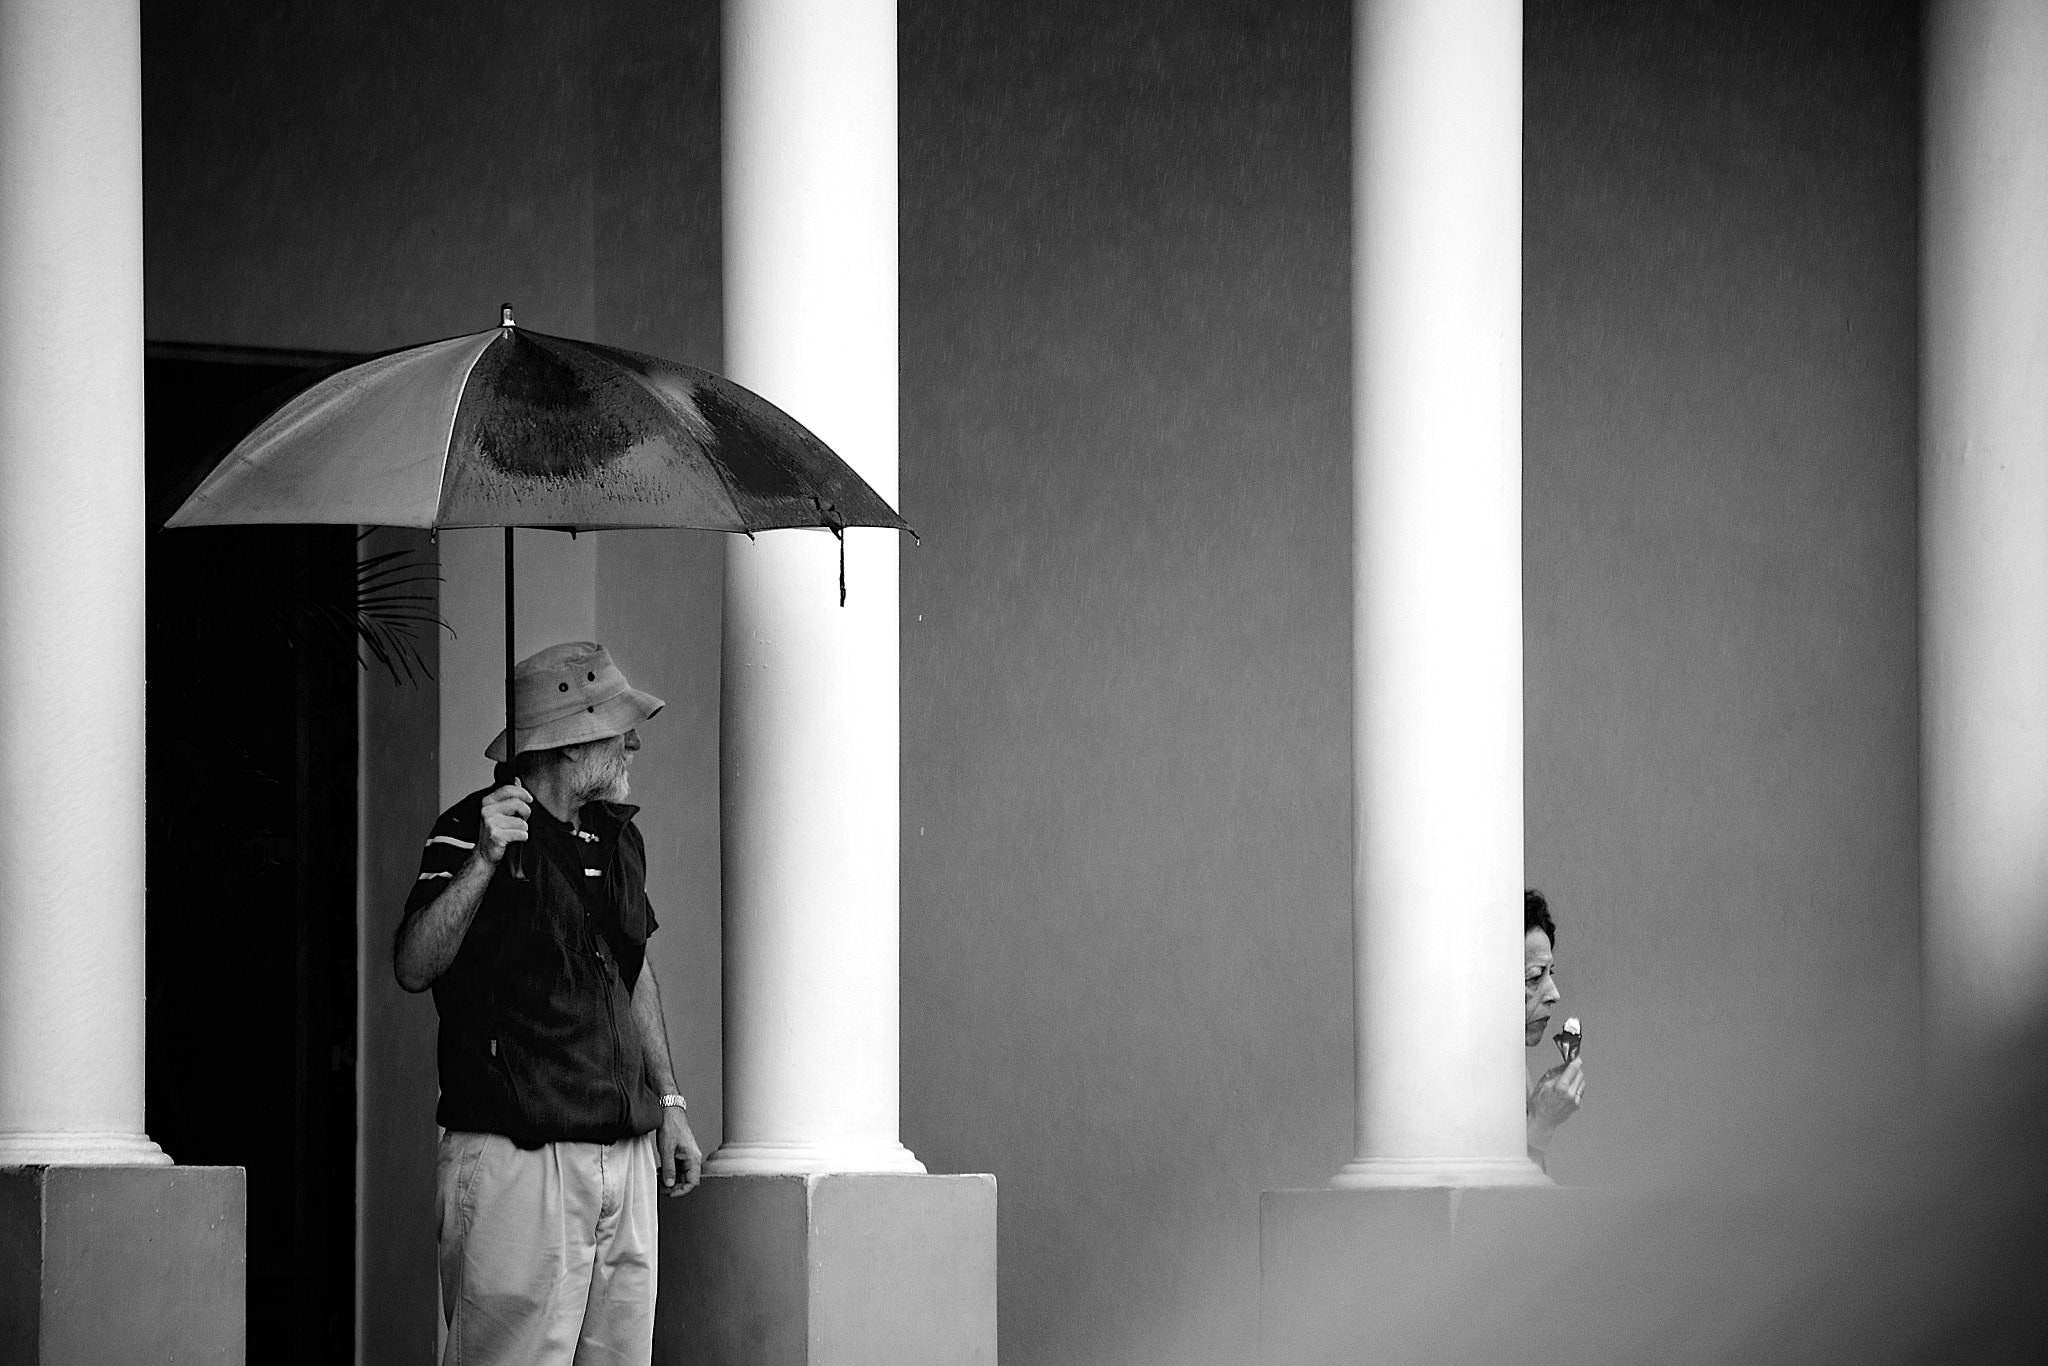 Photograph Raining by Rui Caria on 500px